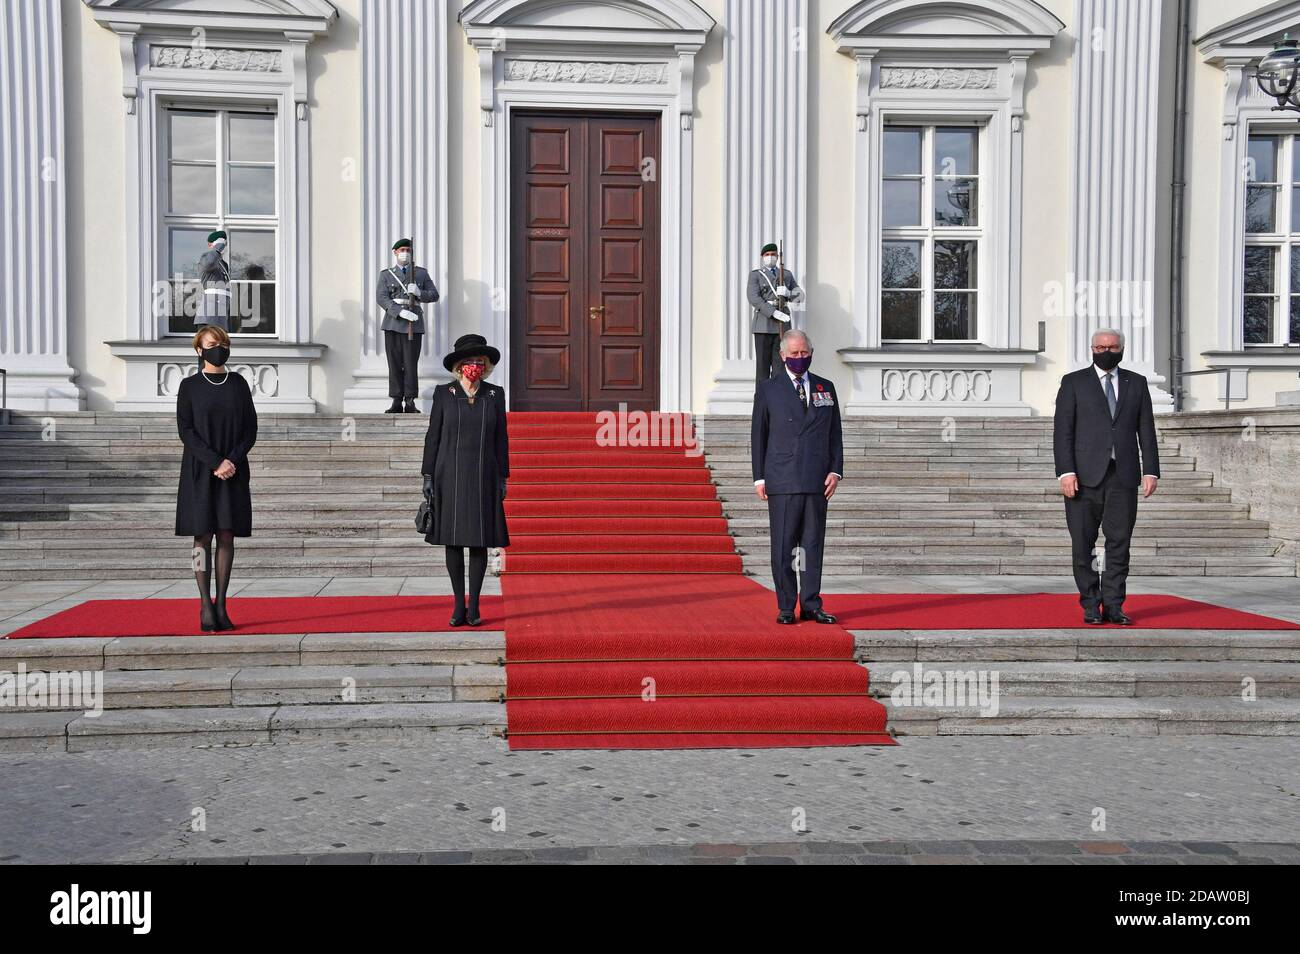 Berlin, Germany. 15th Nov, 2020. First Lady Elke Büdenbender, Camilla, Duchess of Cornwall, Charles, Prince of Wales and Federal President Frank-Walter Steinmeier at the reception at the Federal President of Germany in Bellevue Palace on November 15, 2020 in Berlin, Germany Credit: Geisler-Fotopress GmbH/Alamy Live News Stock Photo